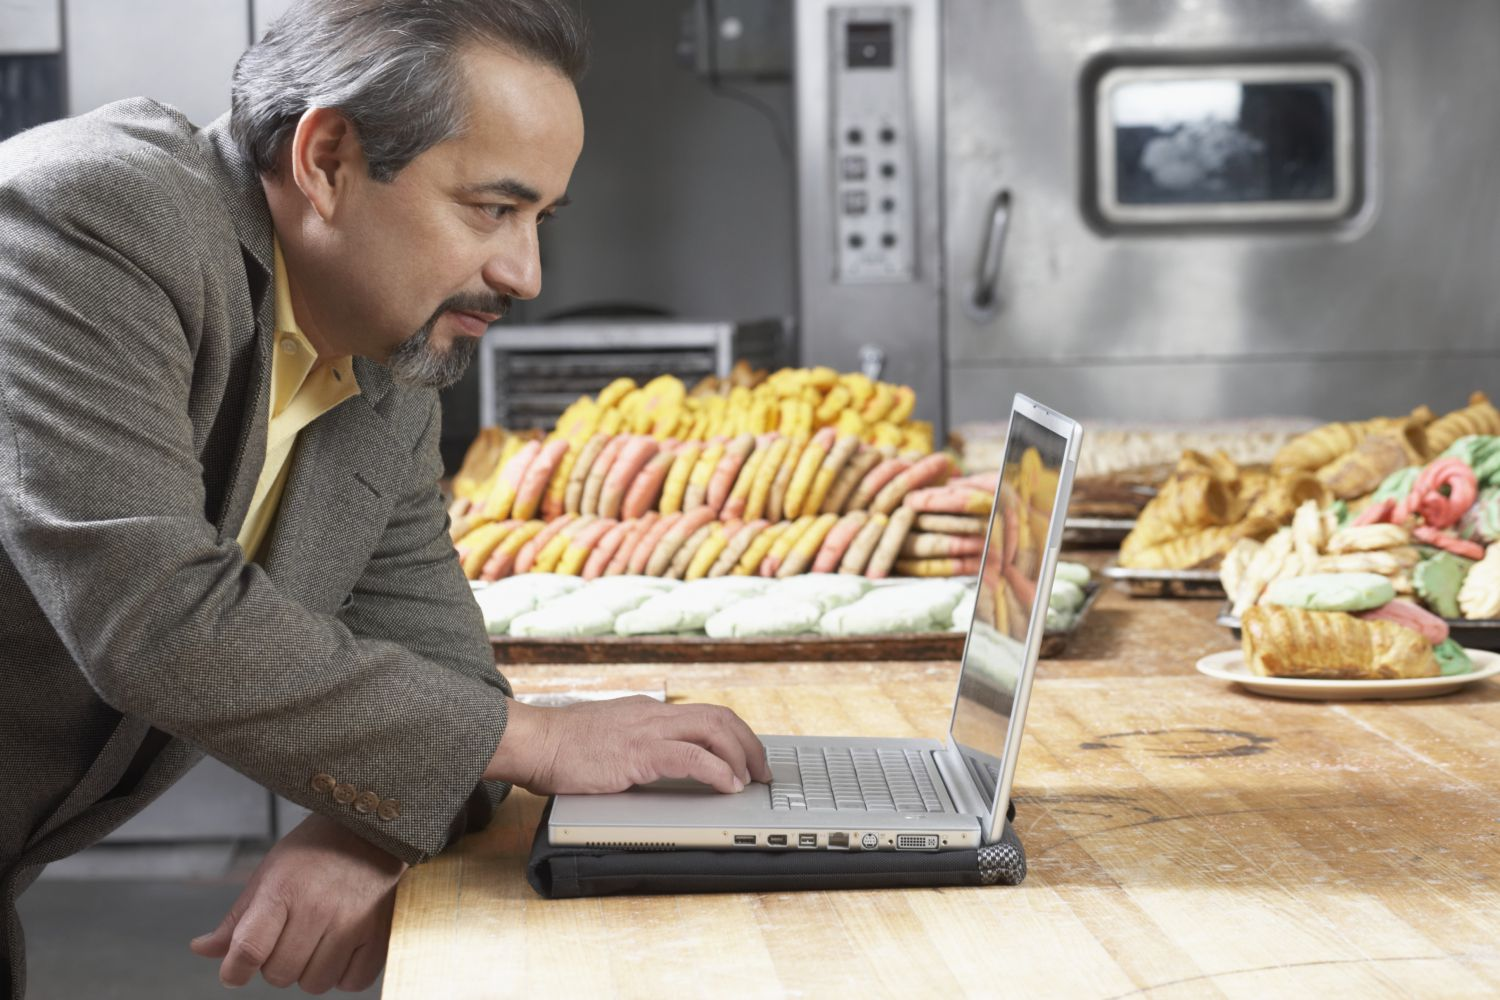 Businessman searching the internet for baked goods for his next business meeting in Kealakekua, HI